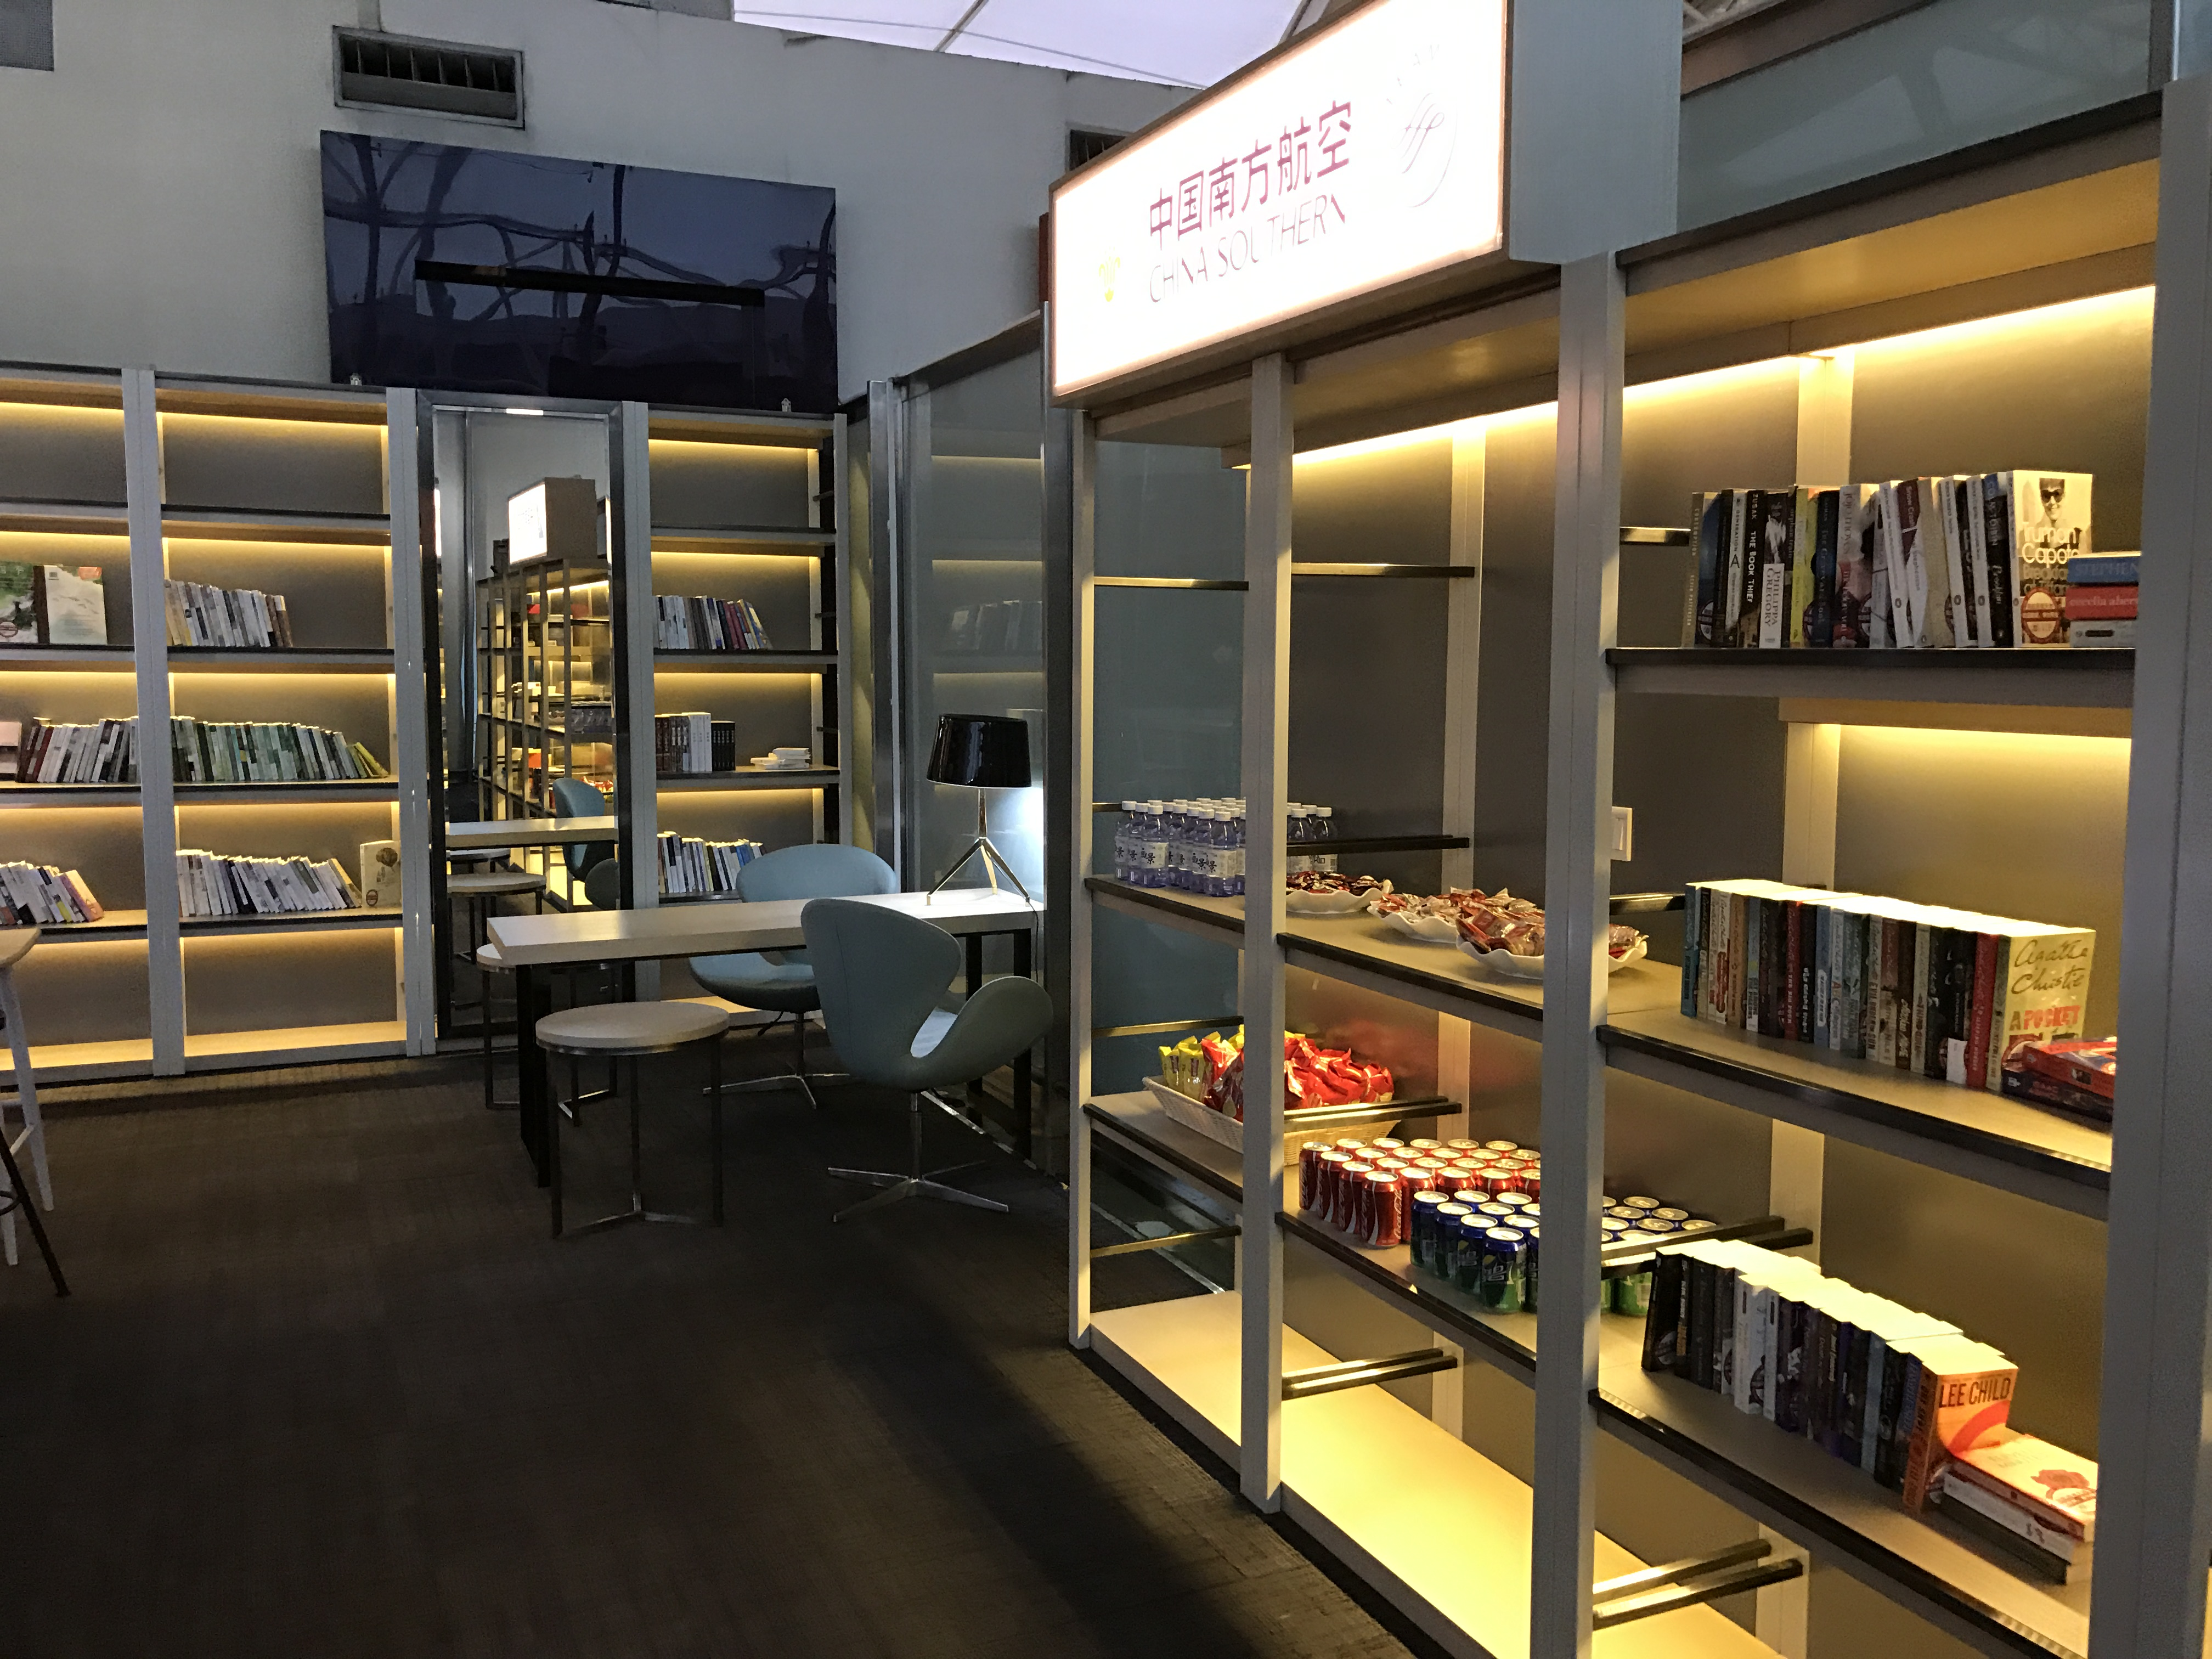 China Southern Airlines Lounge Reviews Skytrax